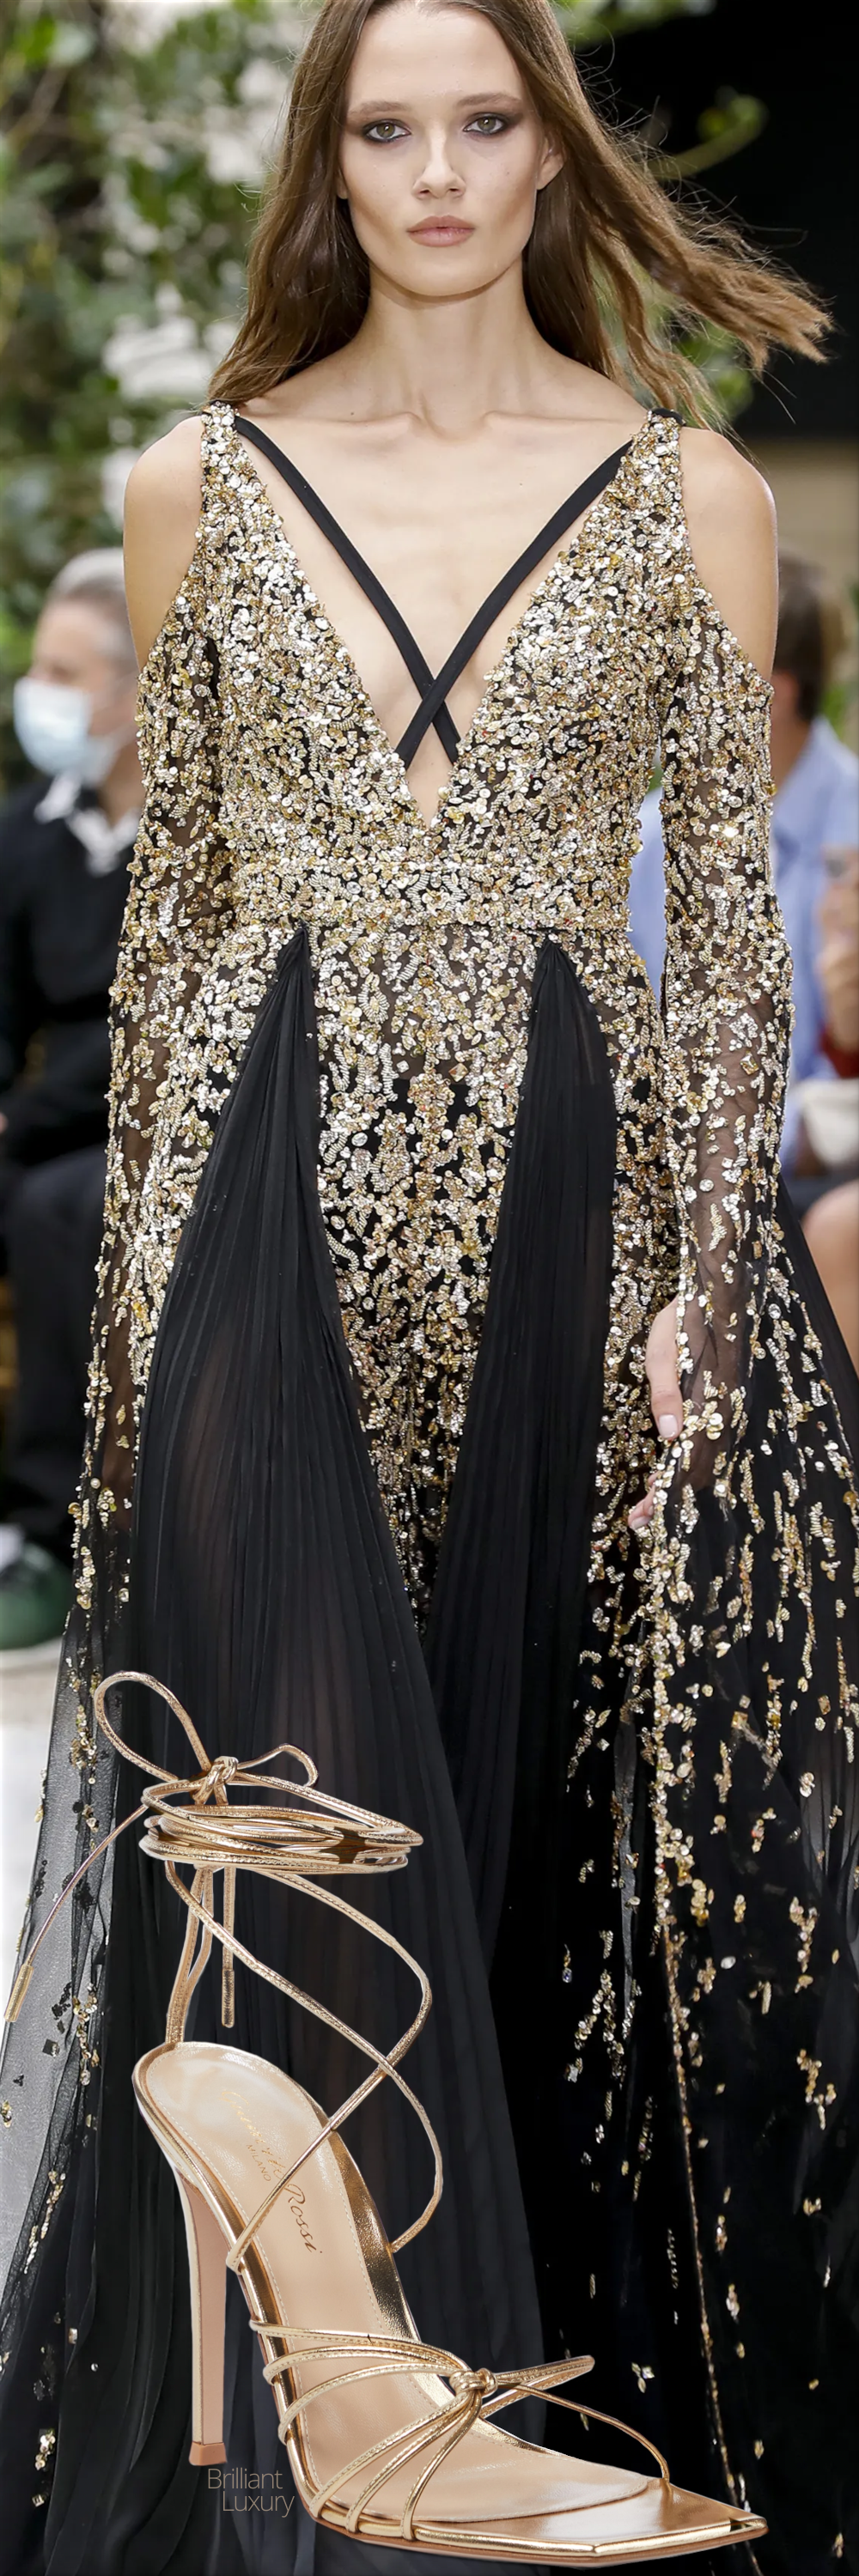 Zuhair Murad black & gold couture gown fall 2021 & Gianvito Rossi gold metallic strappy leather sandal #gianvitorossi #shoes #fashion #brilliantluxury